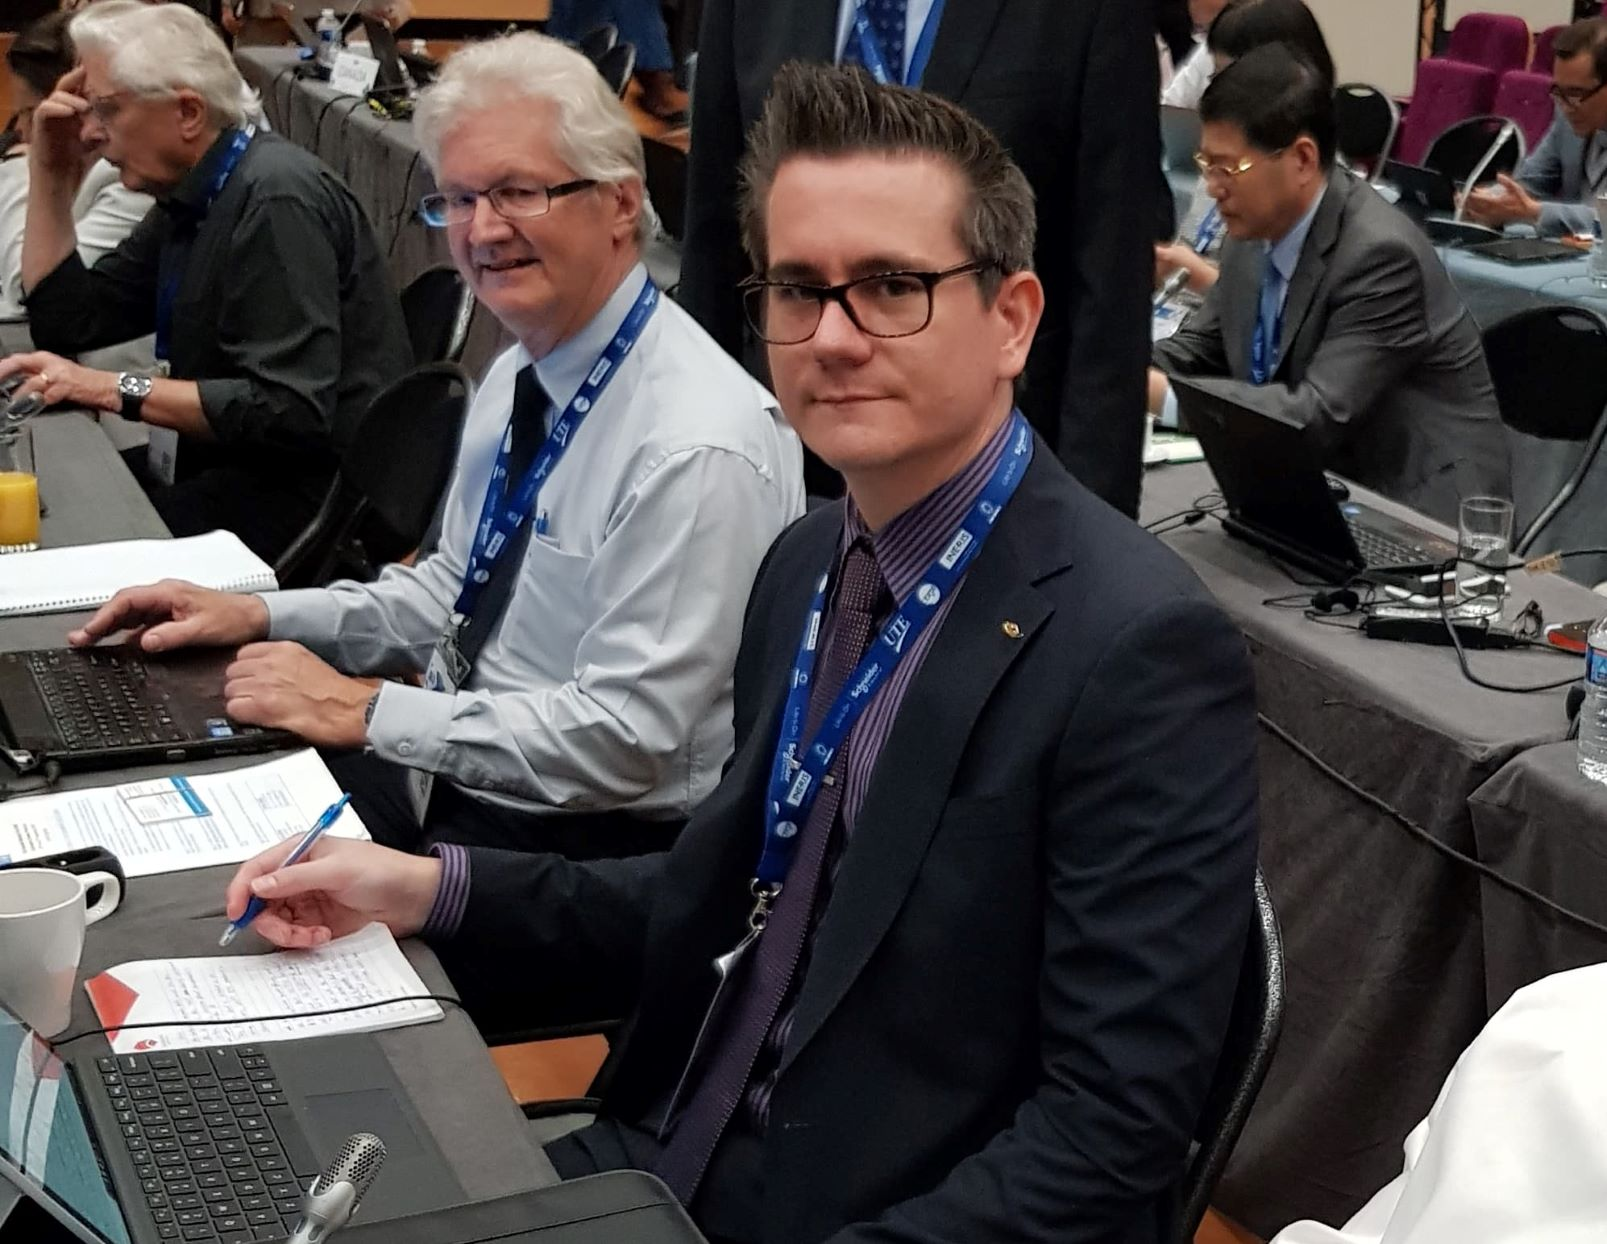 Justin Gavranich (right), lead Australian delegate at IECEx meeting in Cannes, France